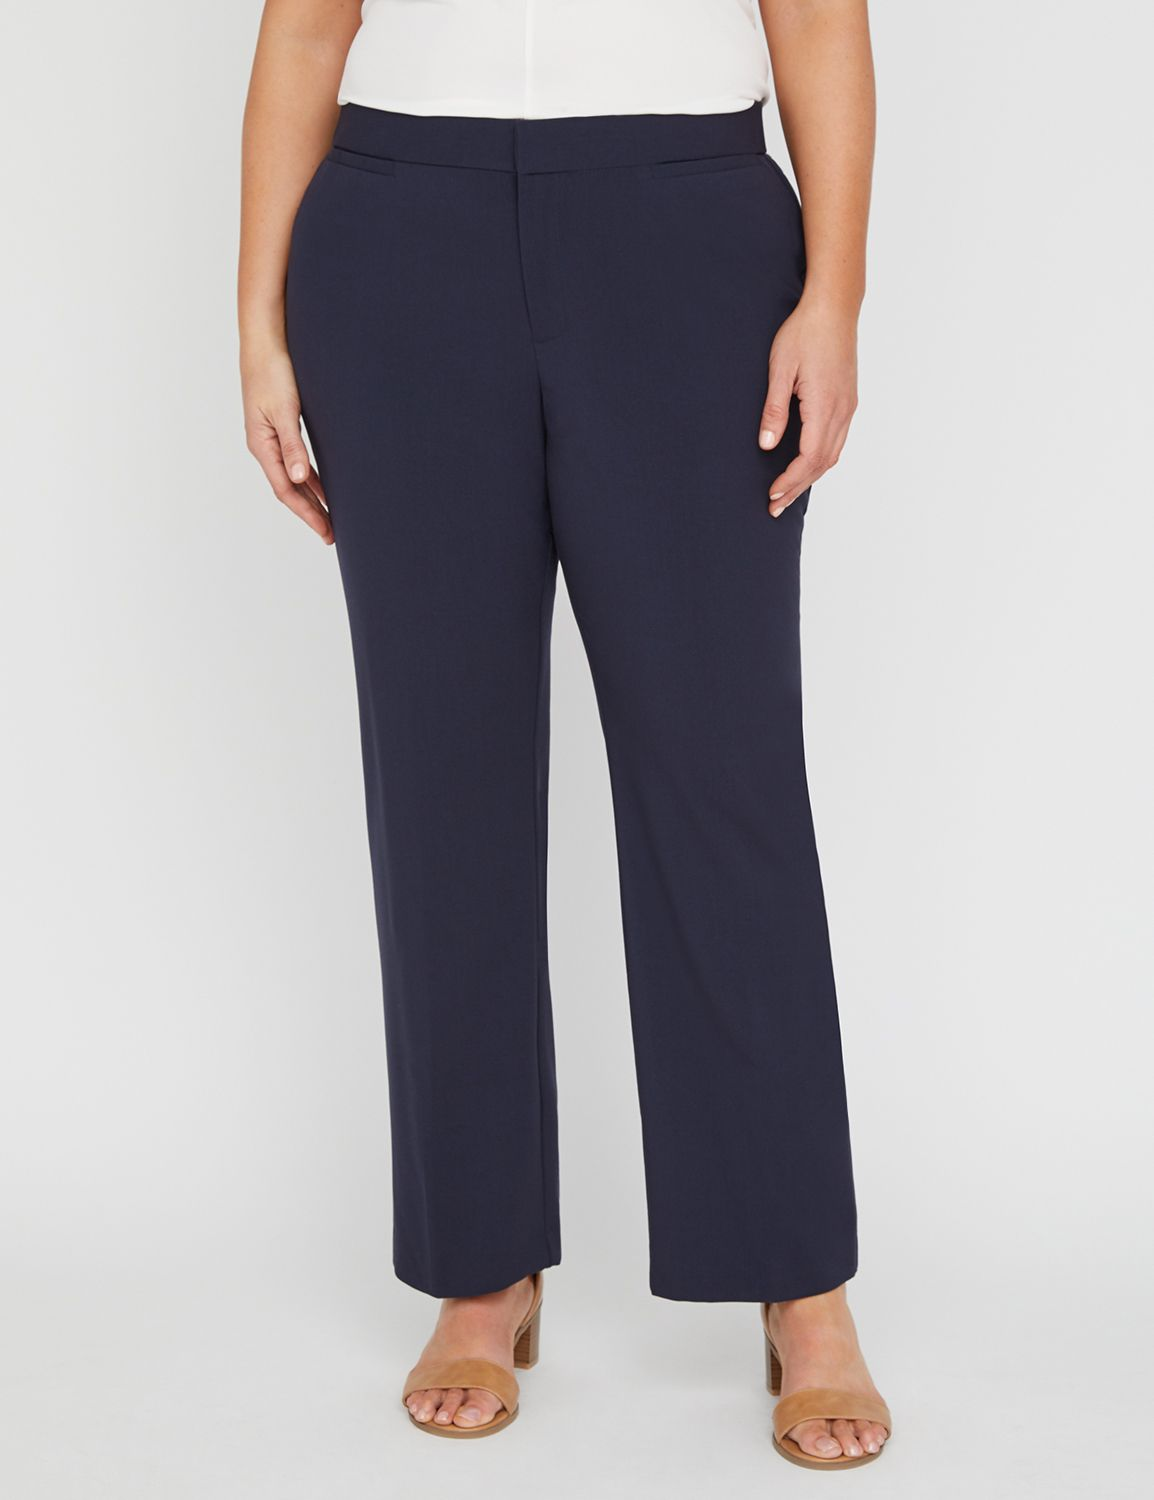 Right Fit Pant (Moderately Curvy) Right Fit Pant (Moderately Curvy) MP-300043668